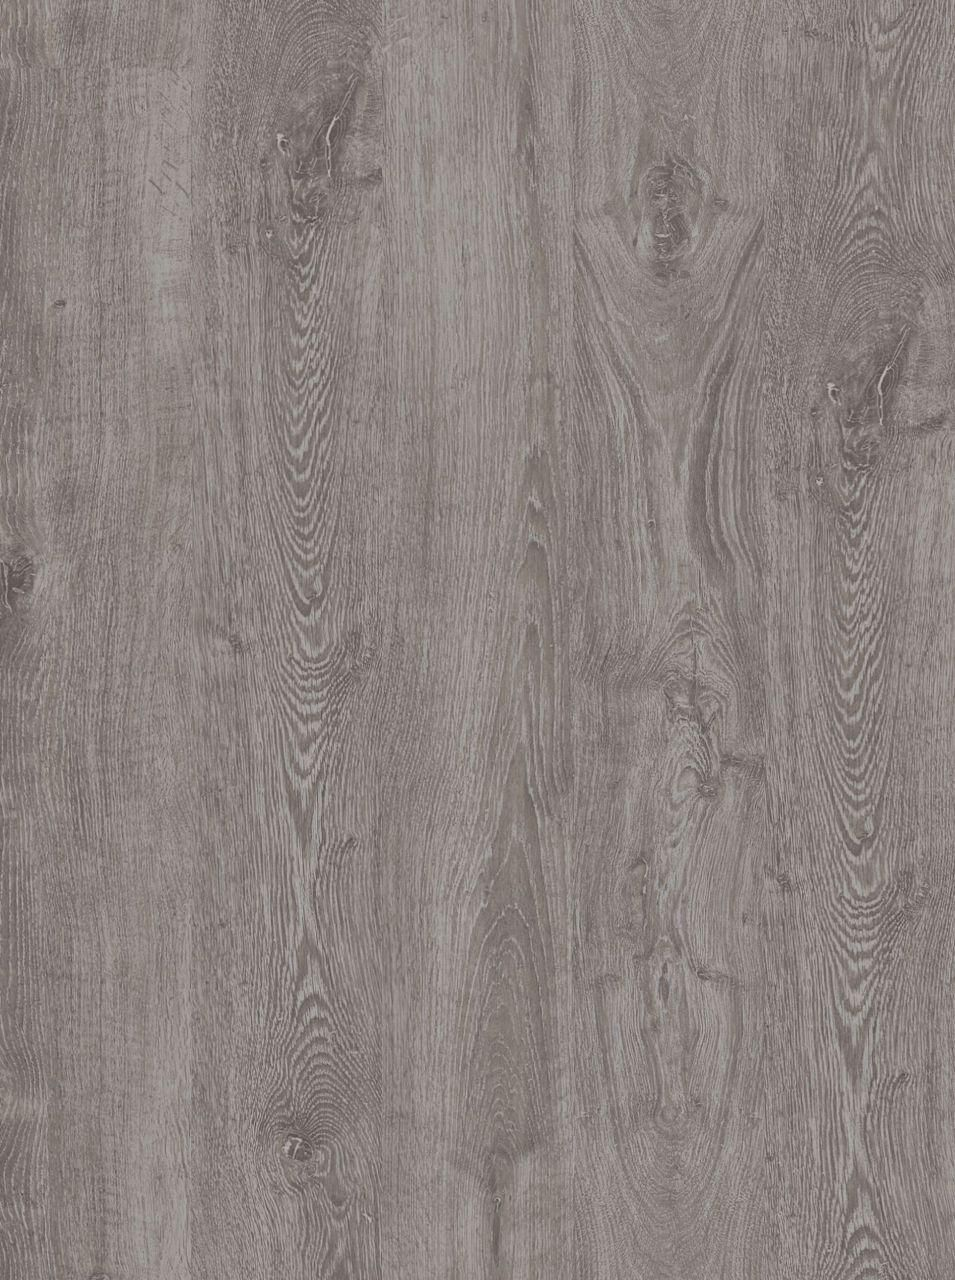 Woody On Pinterest Walnut Wood Flooring And Engineered Wood Floors